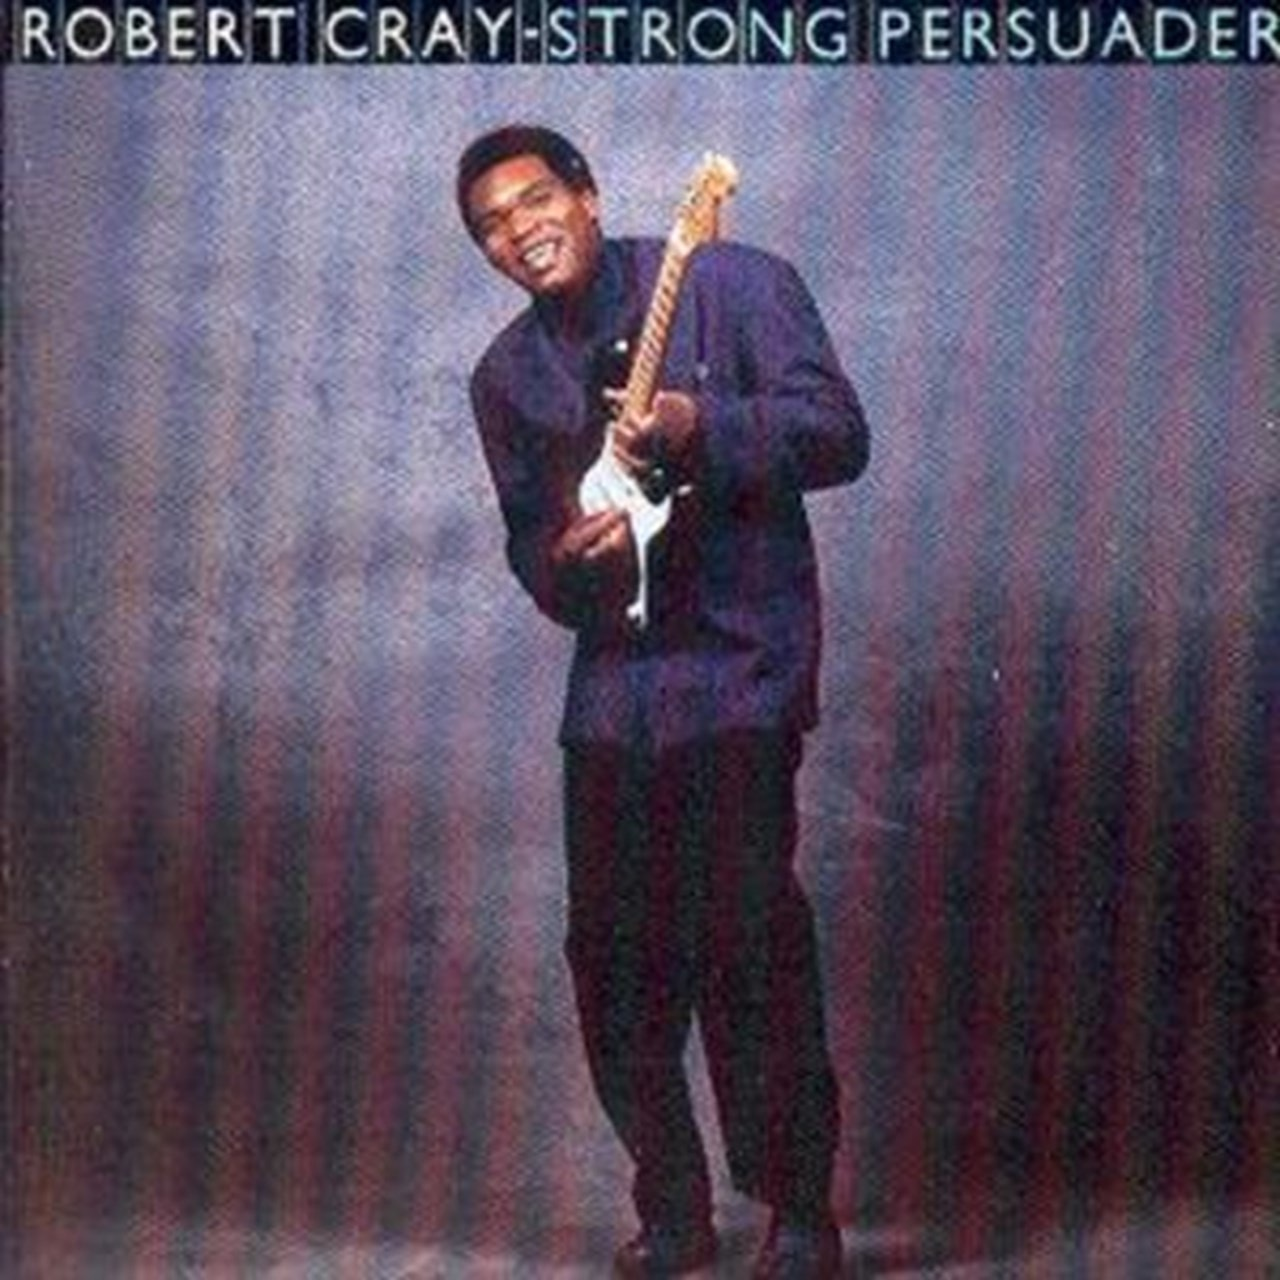 Strong Persuader - 1